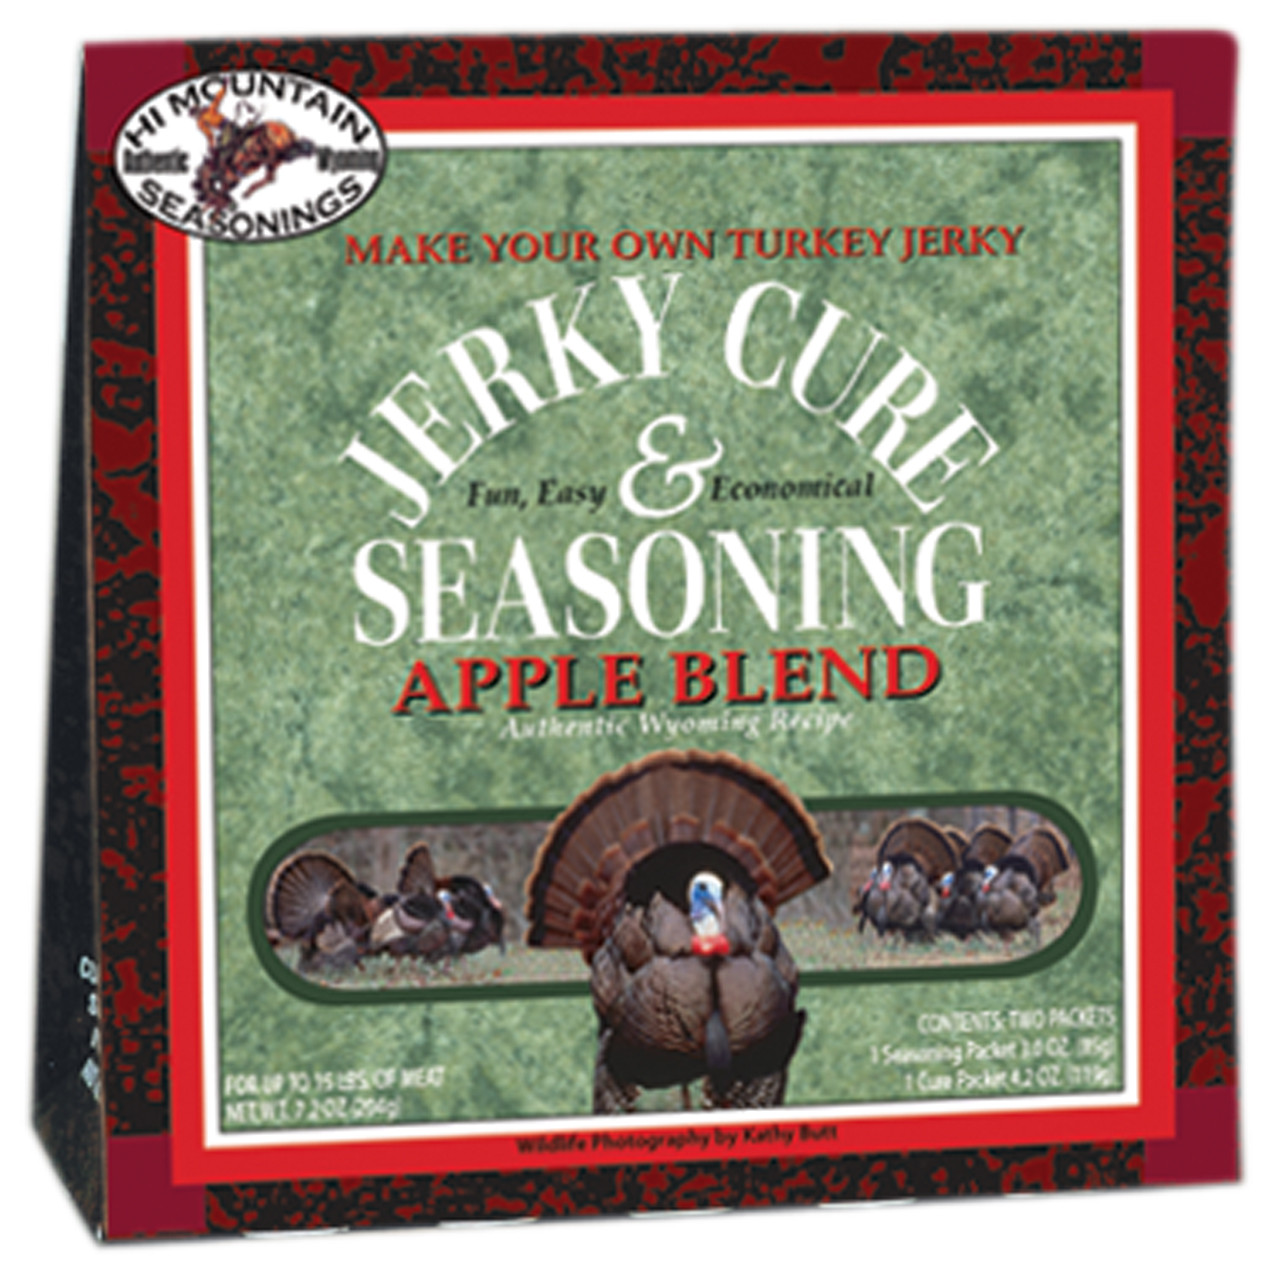 Wild Turkey Apple Blend Jerky Kit